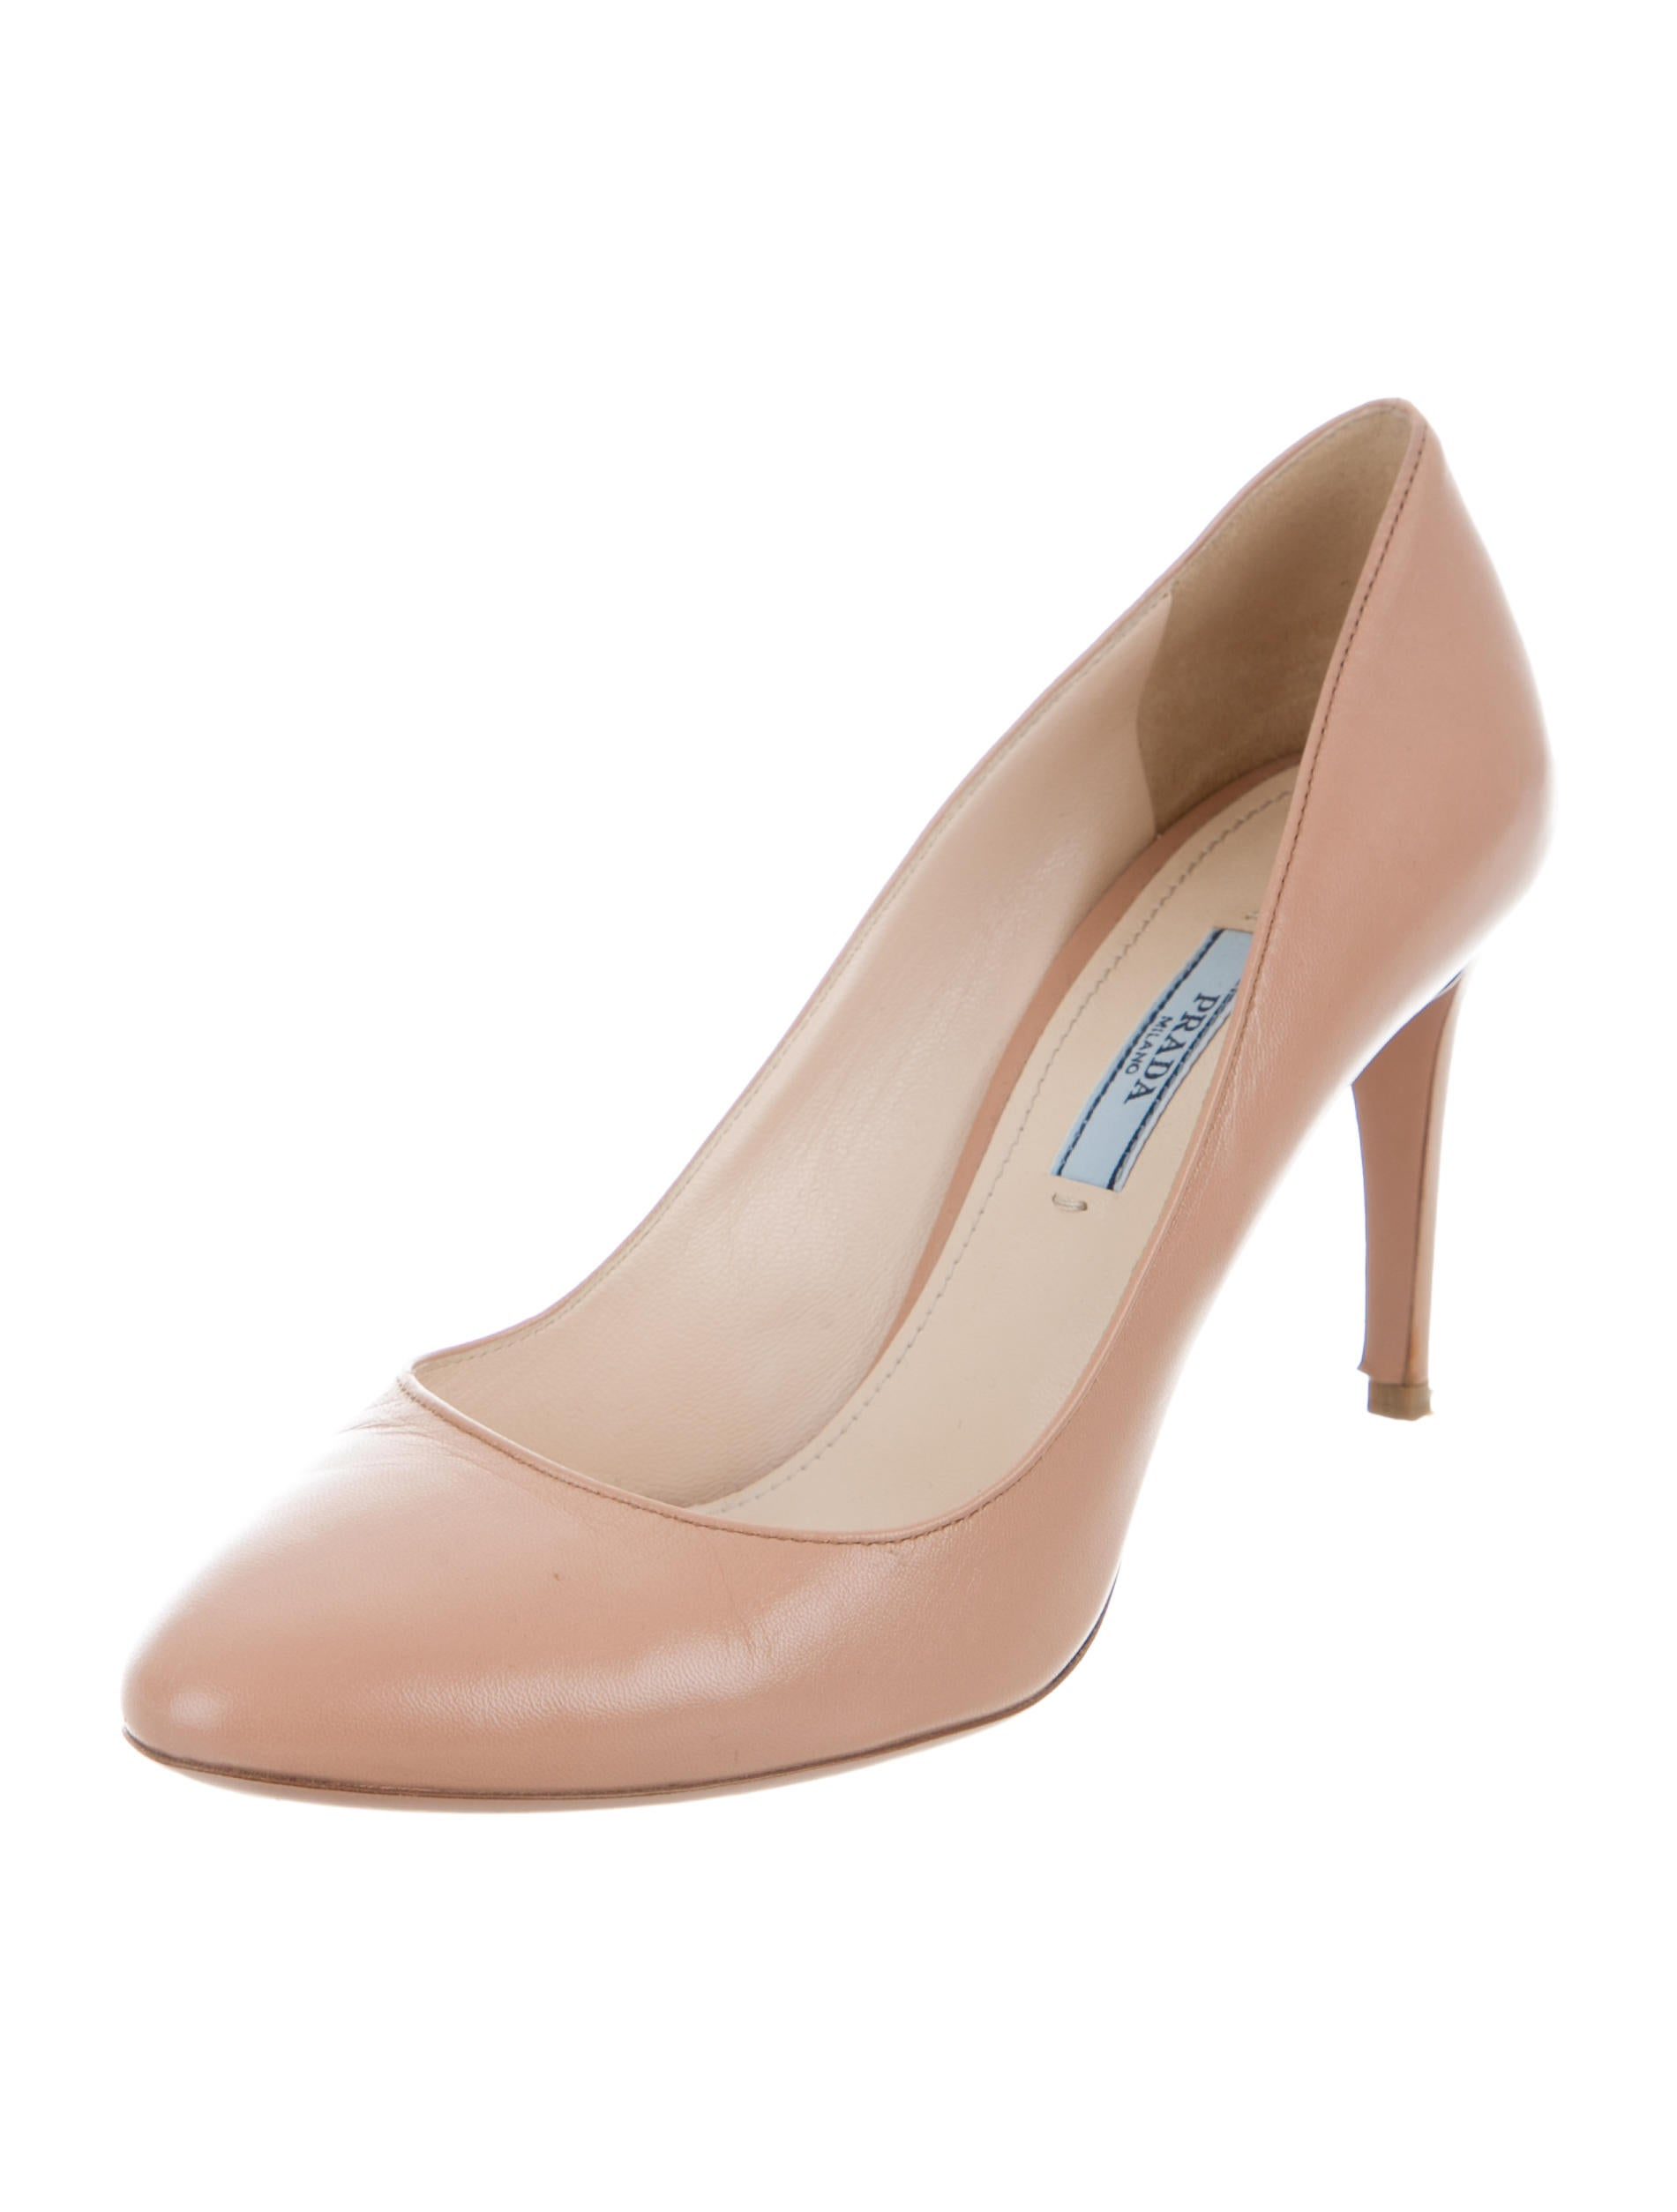 fast delivery Inexpensive for sale Prada Leather Round-Toe Pumps sale buy xVbmsUl